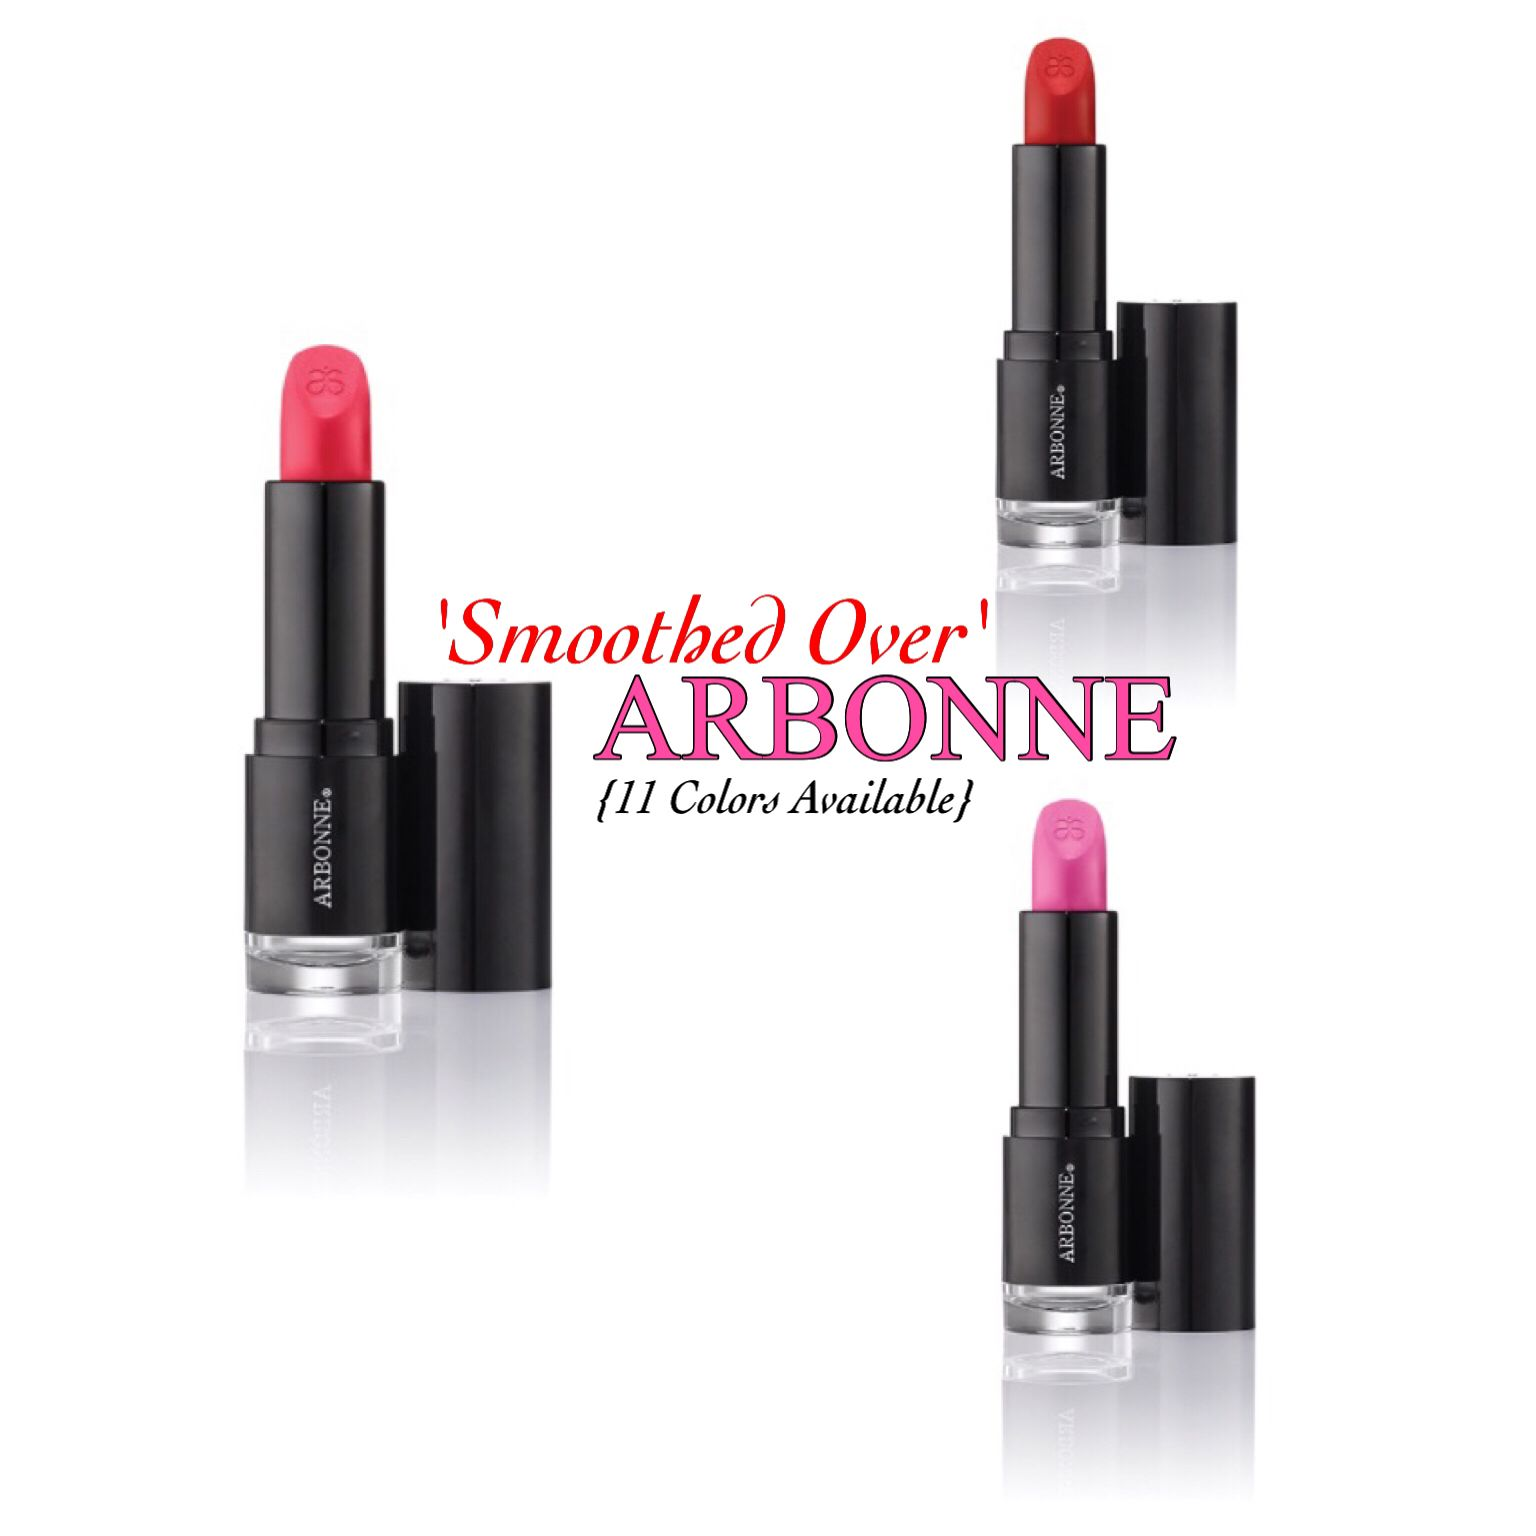 arbonne makeup colors lipsticks lip beauty face consultant independent age